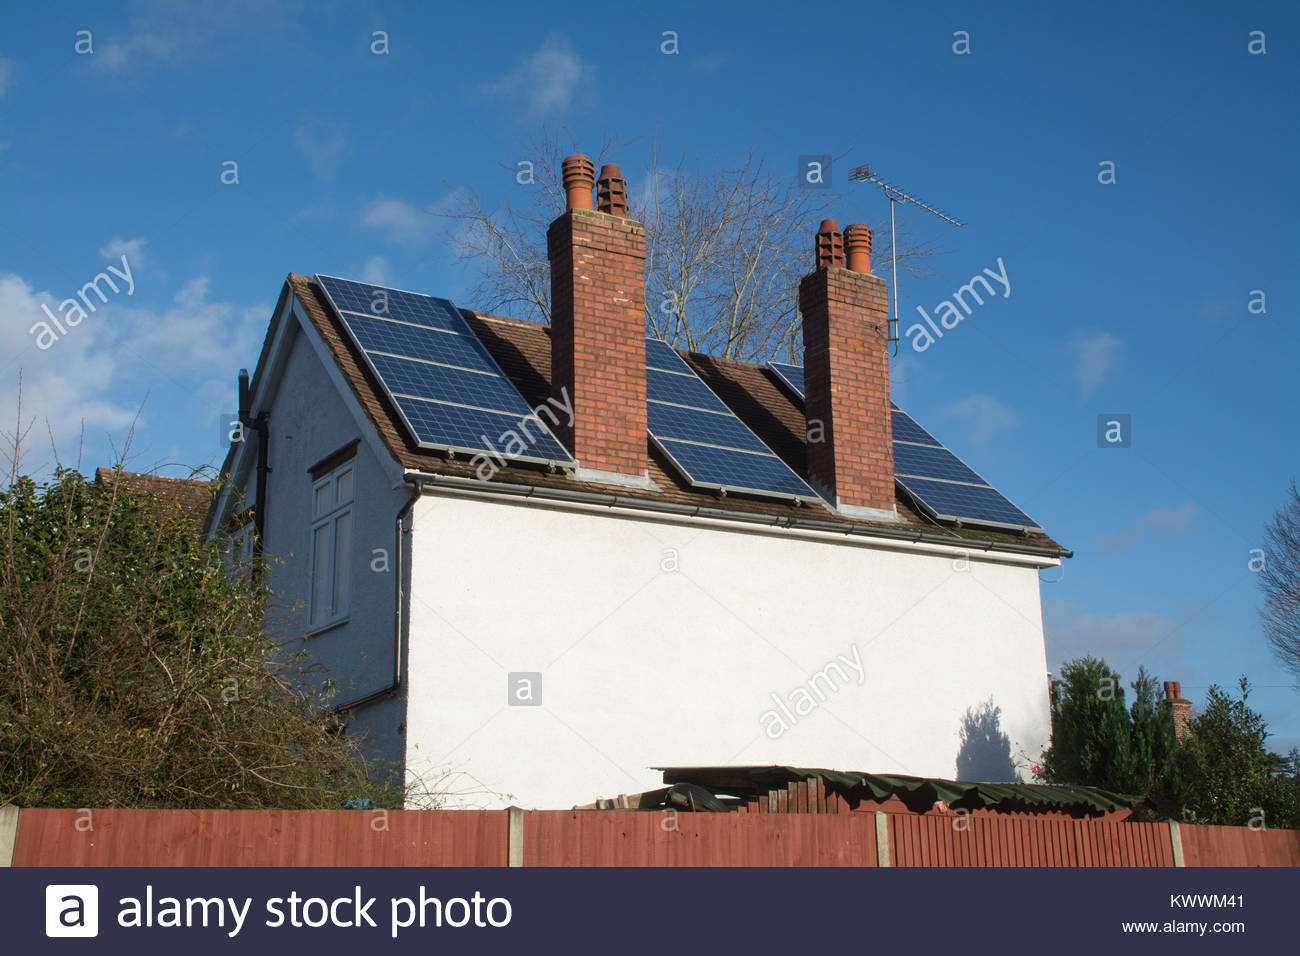 Solar panels fitted to roof of detached house in Hampshire, UK - Stock Image